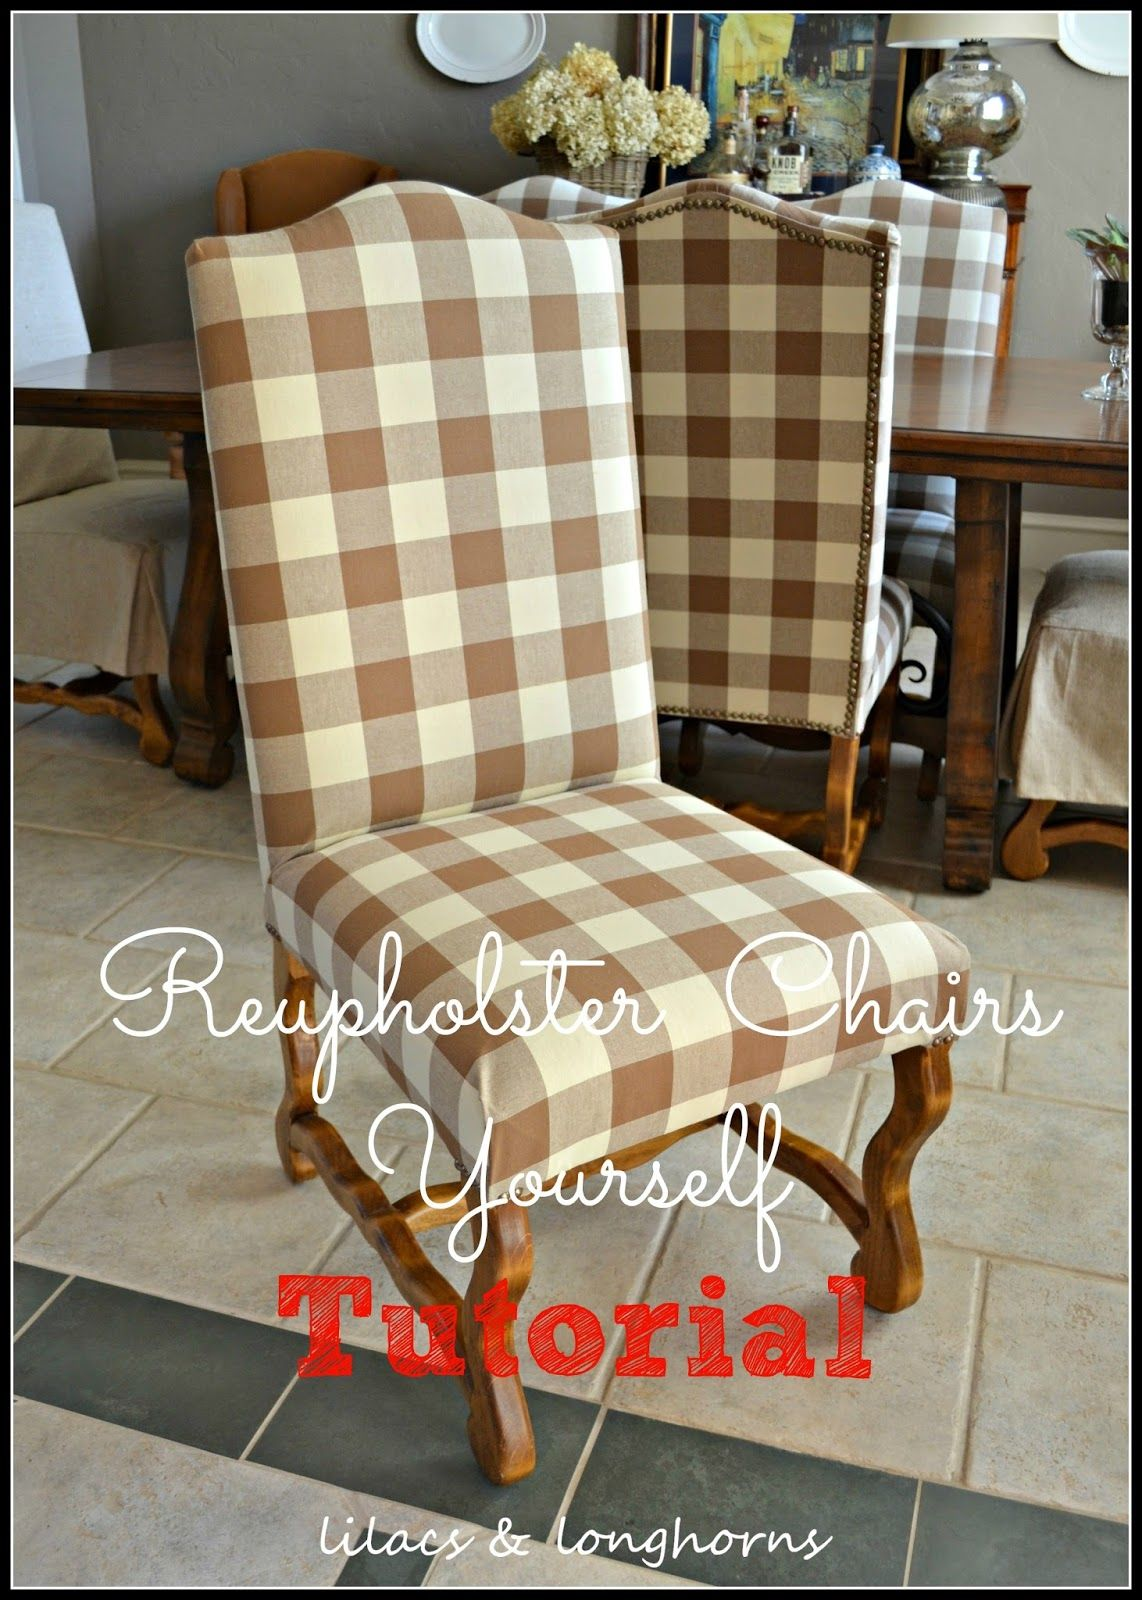 ETREMELY GOOD TUTORIAL on how to cover chairs THE ONE I WANT TO USE ...